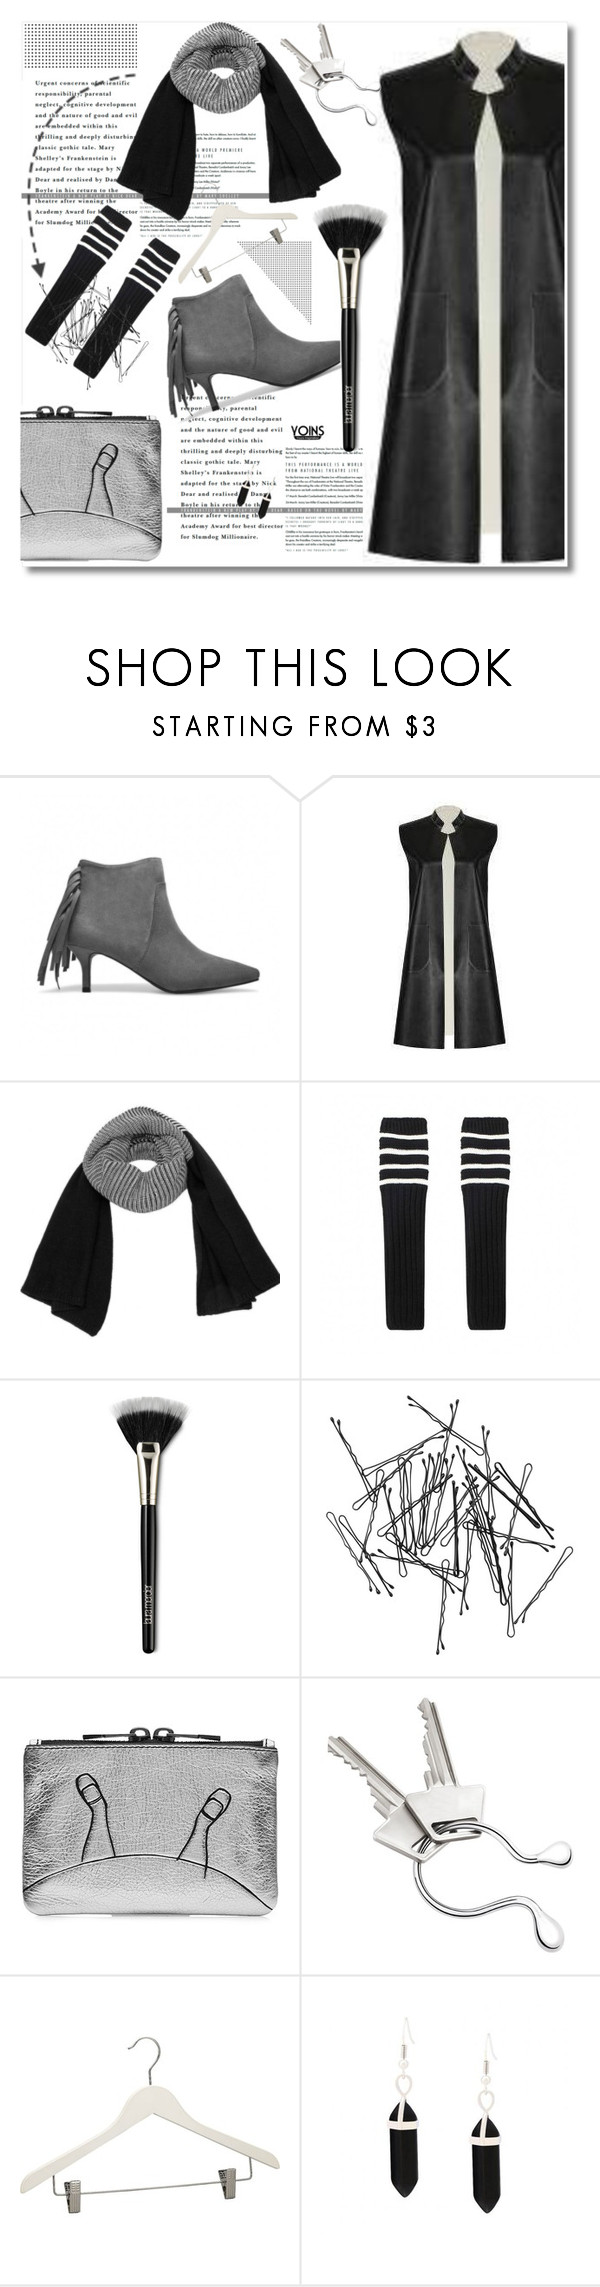 """""""BLACK AND WHITE ALWAYS MY LOVE"""" by yoinscollection ❤ liked on Polyvore featuring Laura Mercier, Monki, Marc by Marc Jacobs, Georg Jensen, Crate and Barrel, women's clothing, women's fashion, women, female and woman"""